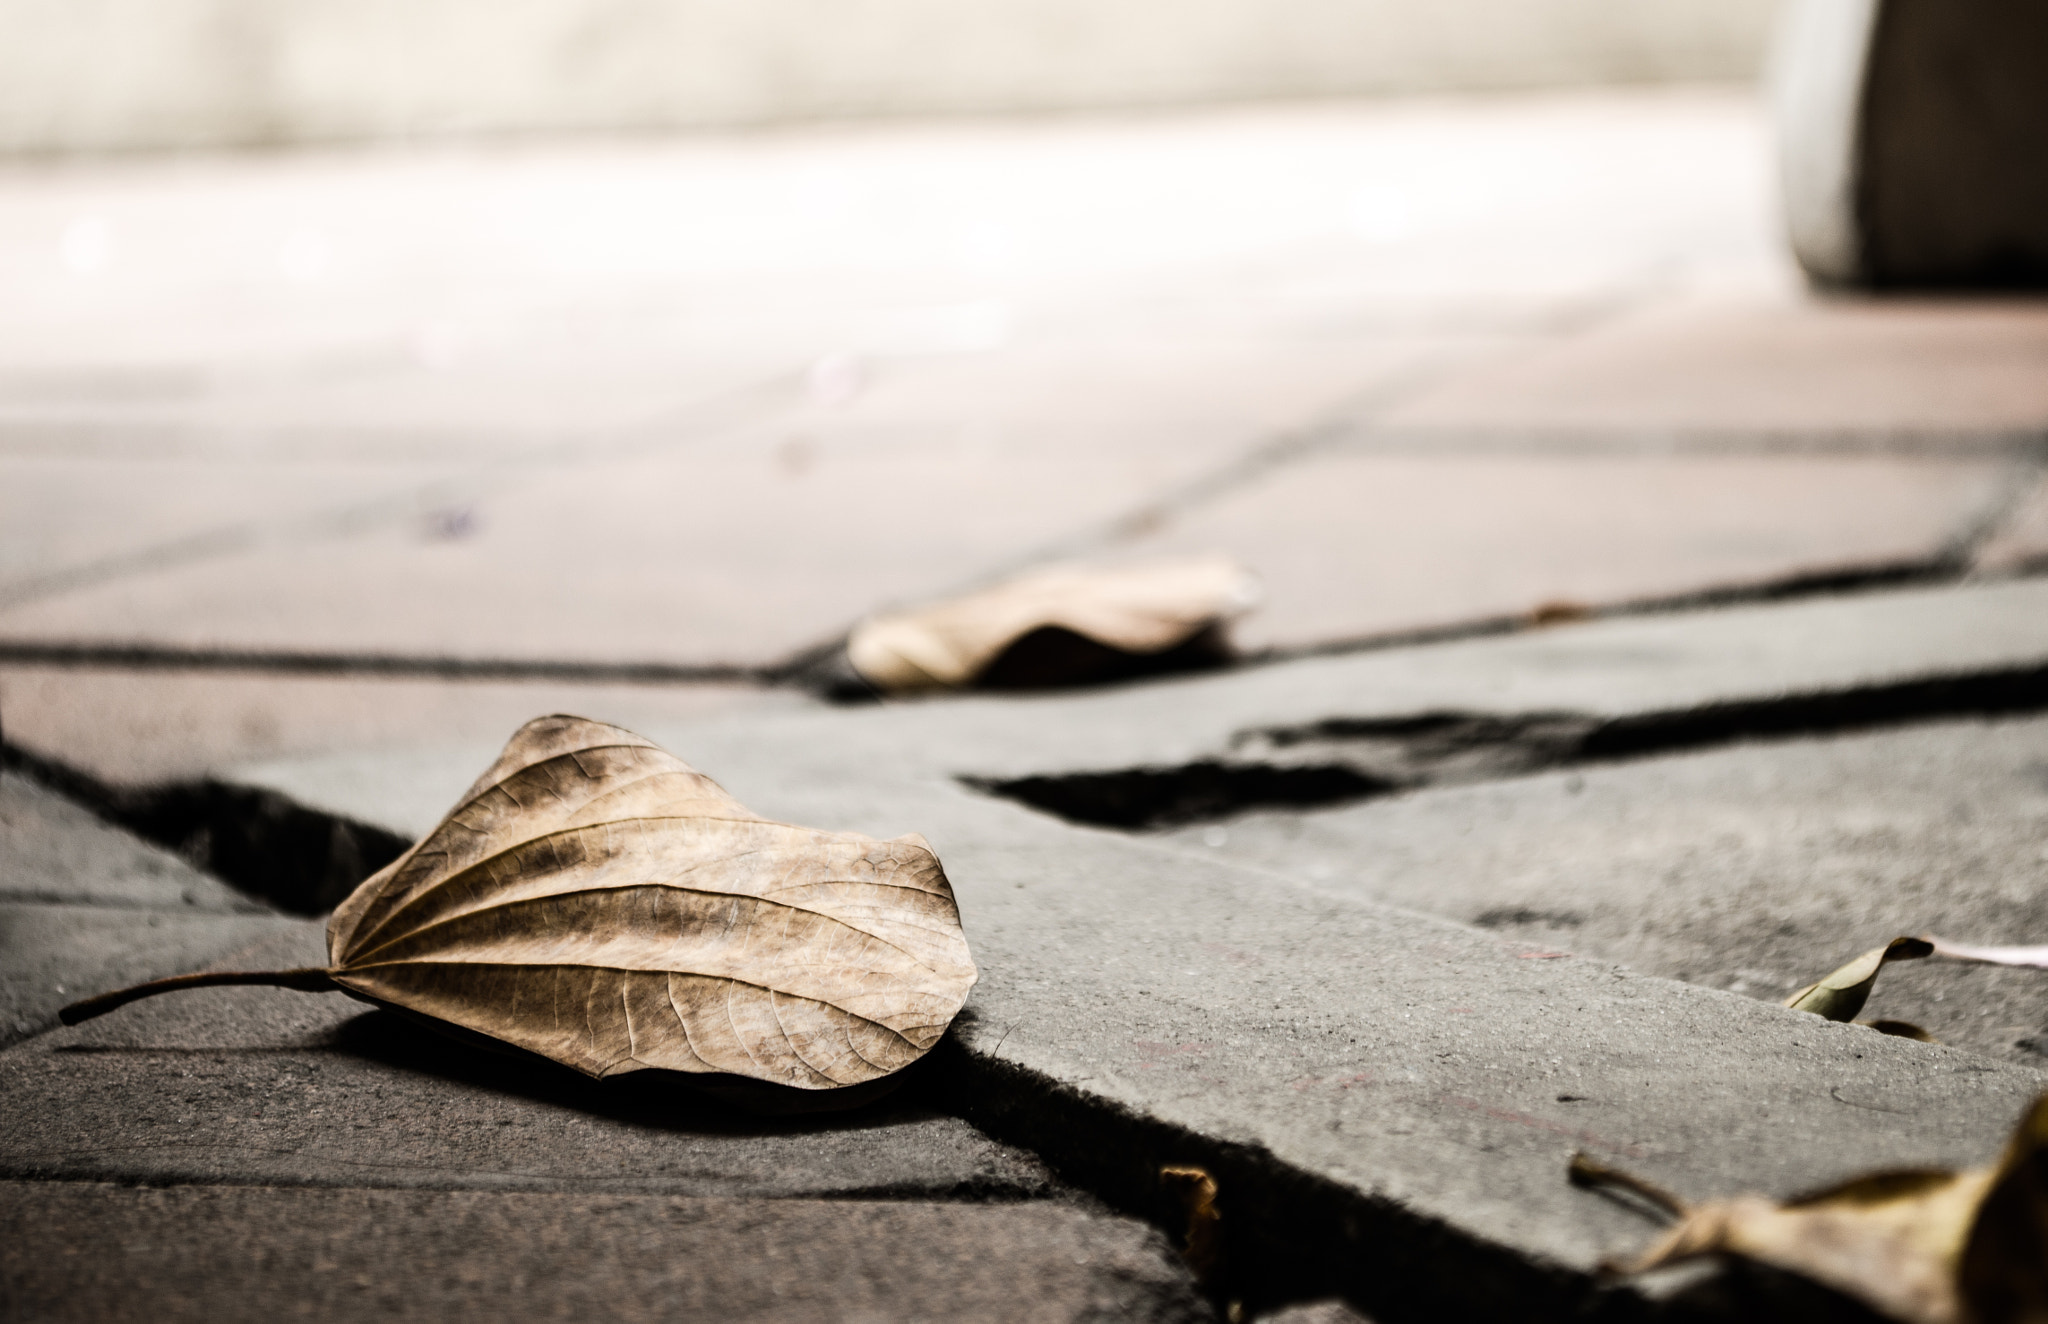 Photograph Haggard leaves by Saranyu Wongwian on 500px